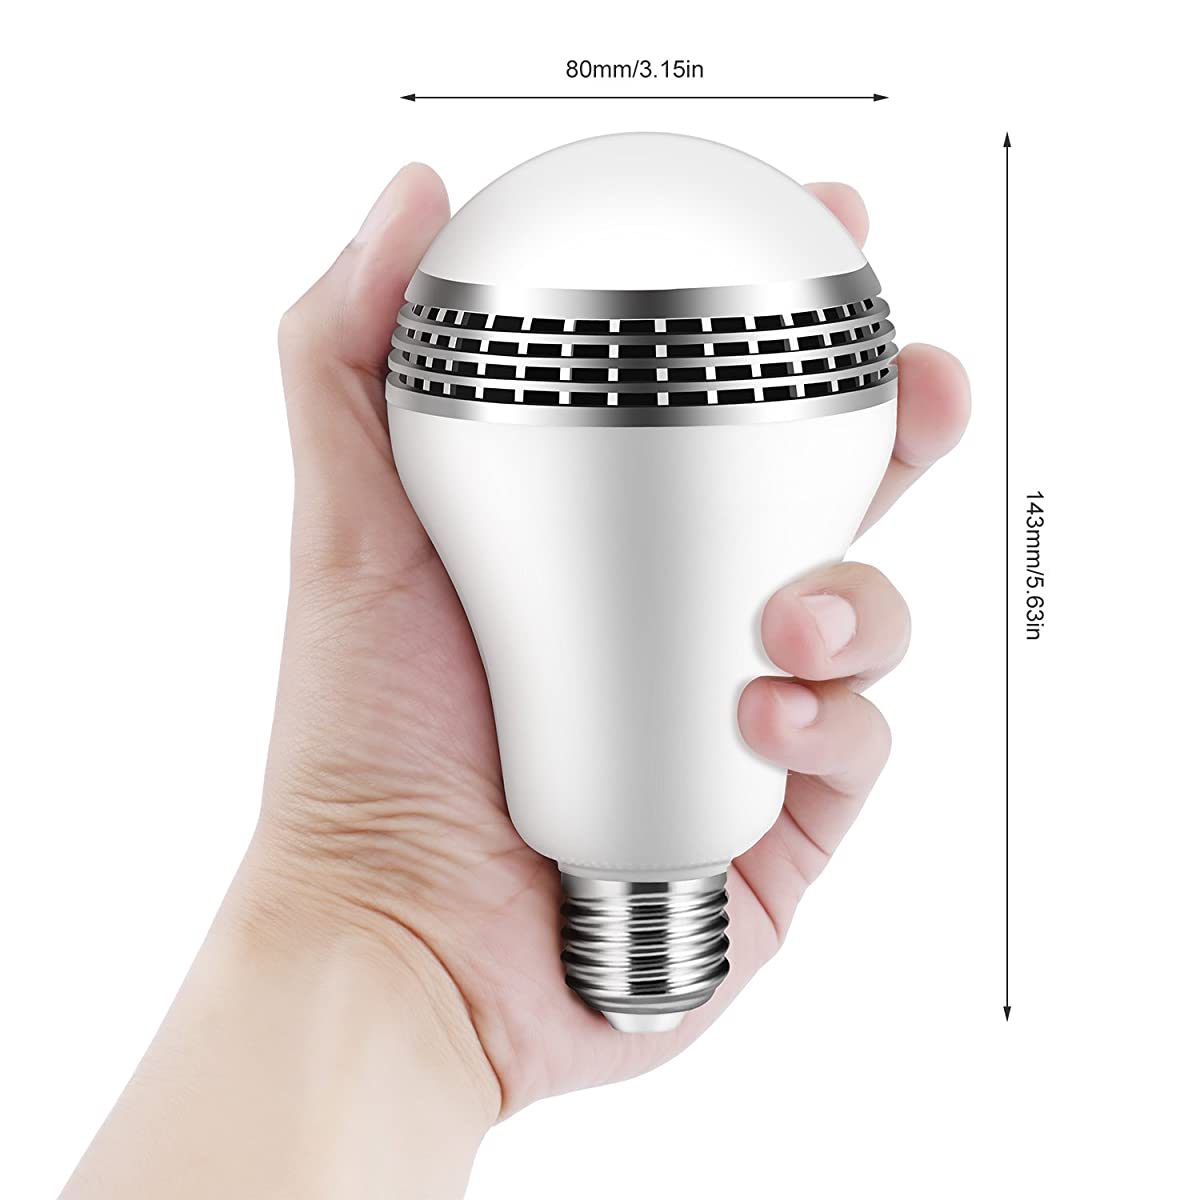 ICOCO Bluetooth Smart Speaker Light E27 LED White + RGB Bulb Colorful Lamp Smart Music Audio Bluetooth Speaker with Remote Control for Home, Stage